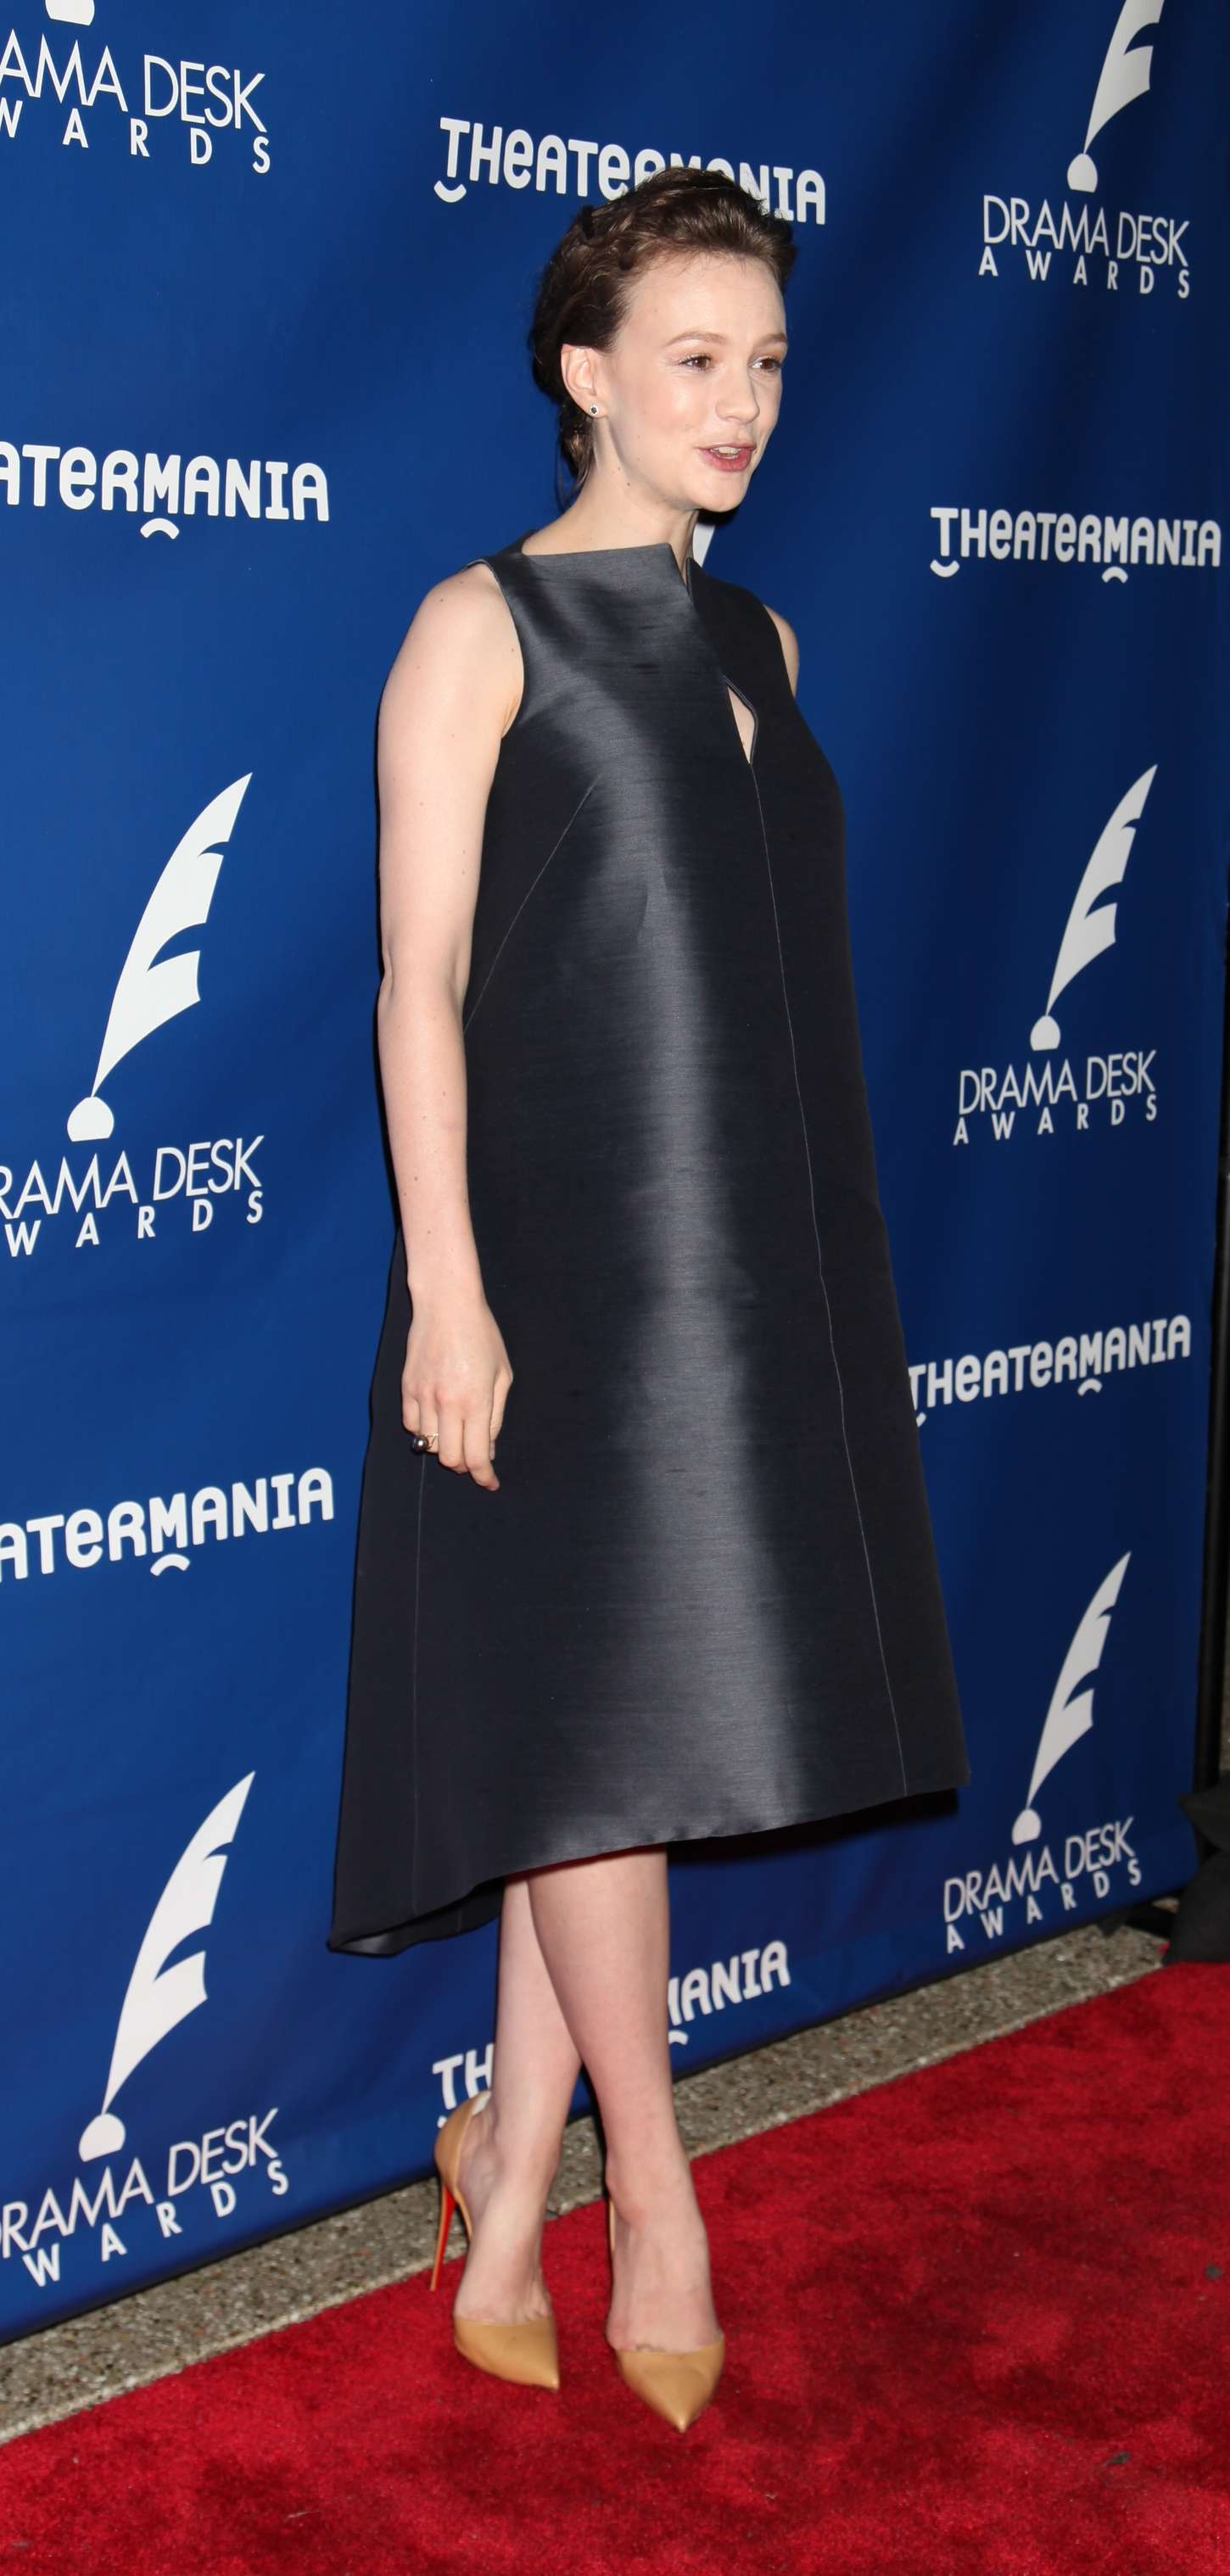 Carey Mulligan Drama Desk Awards in New York